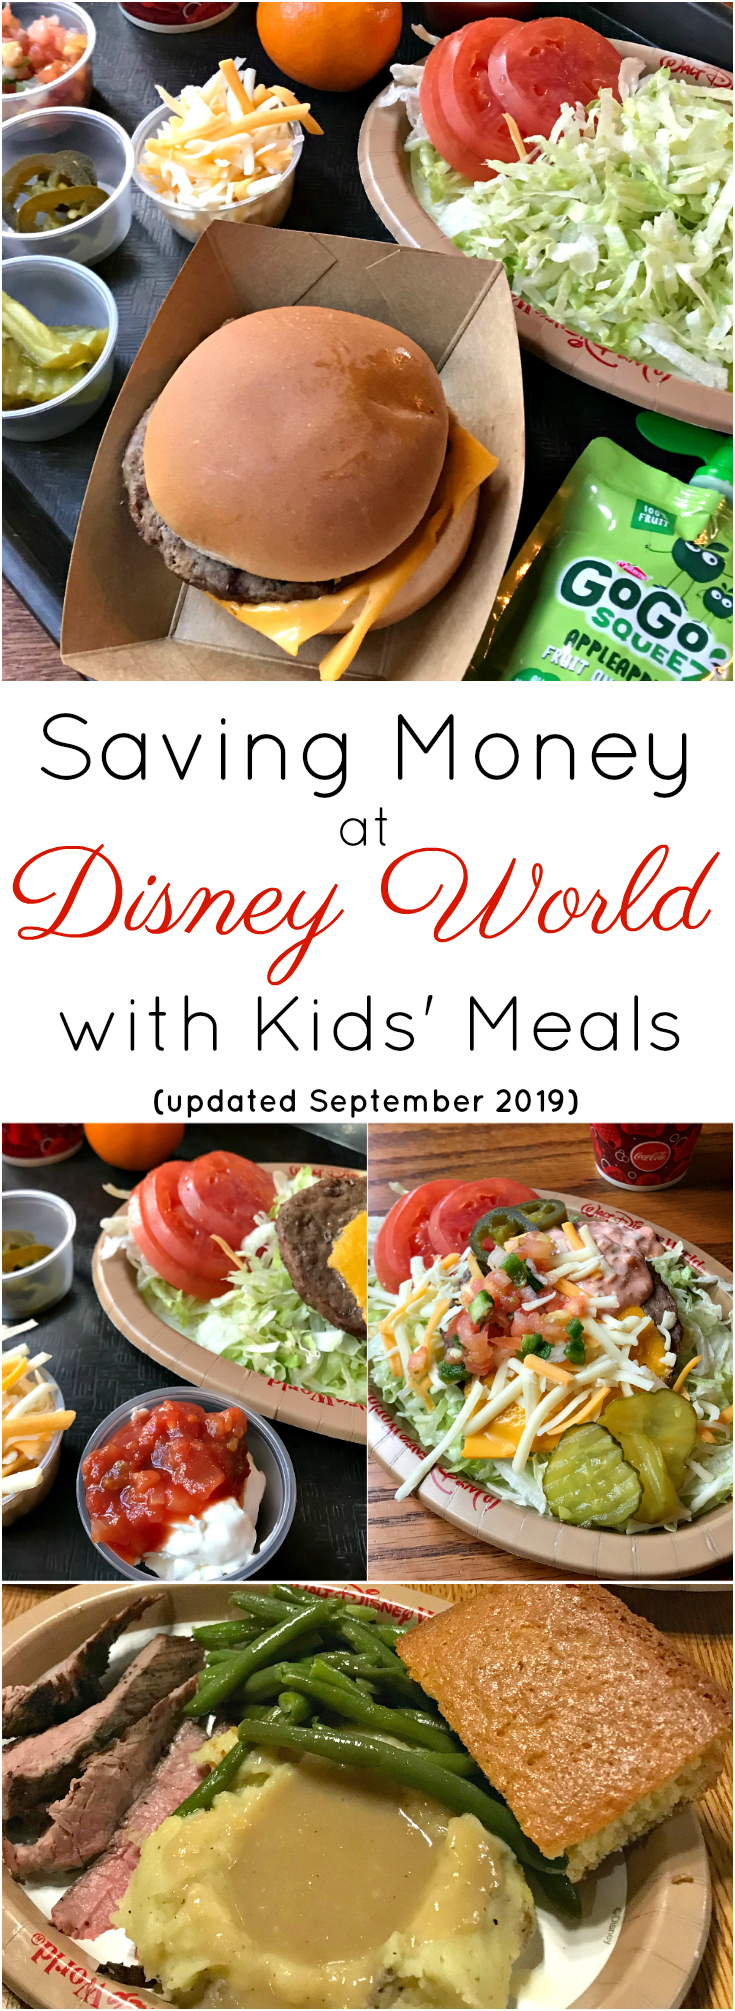 Saving Money at Disney with Kids Meals